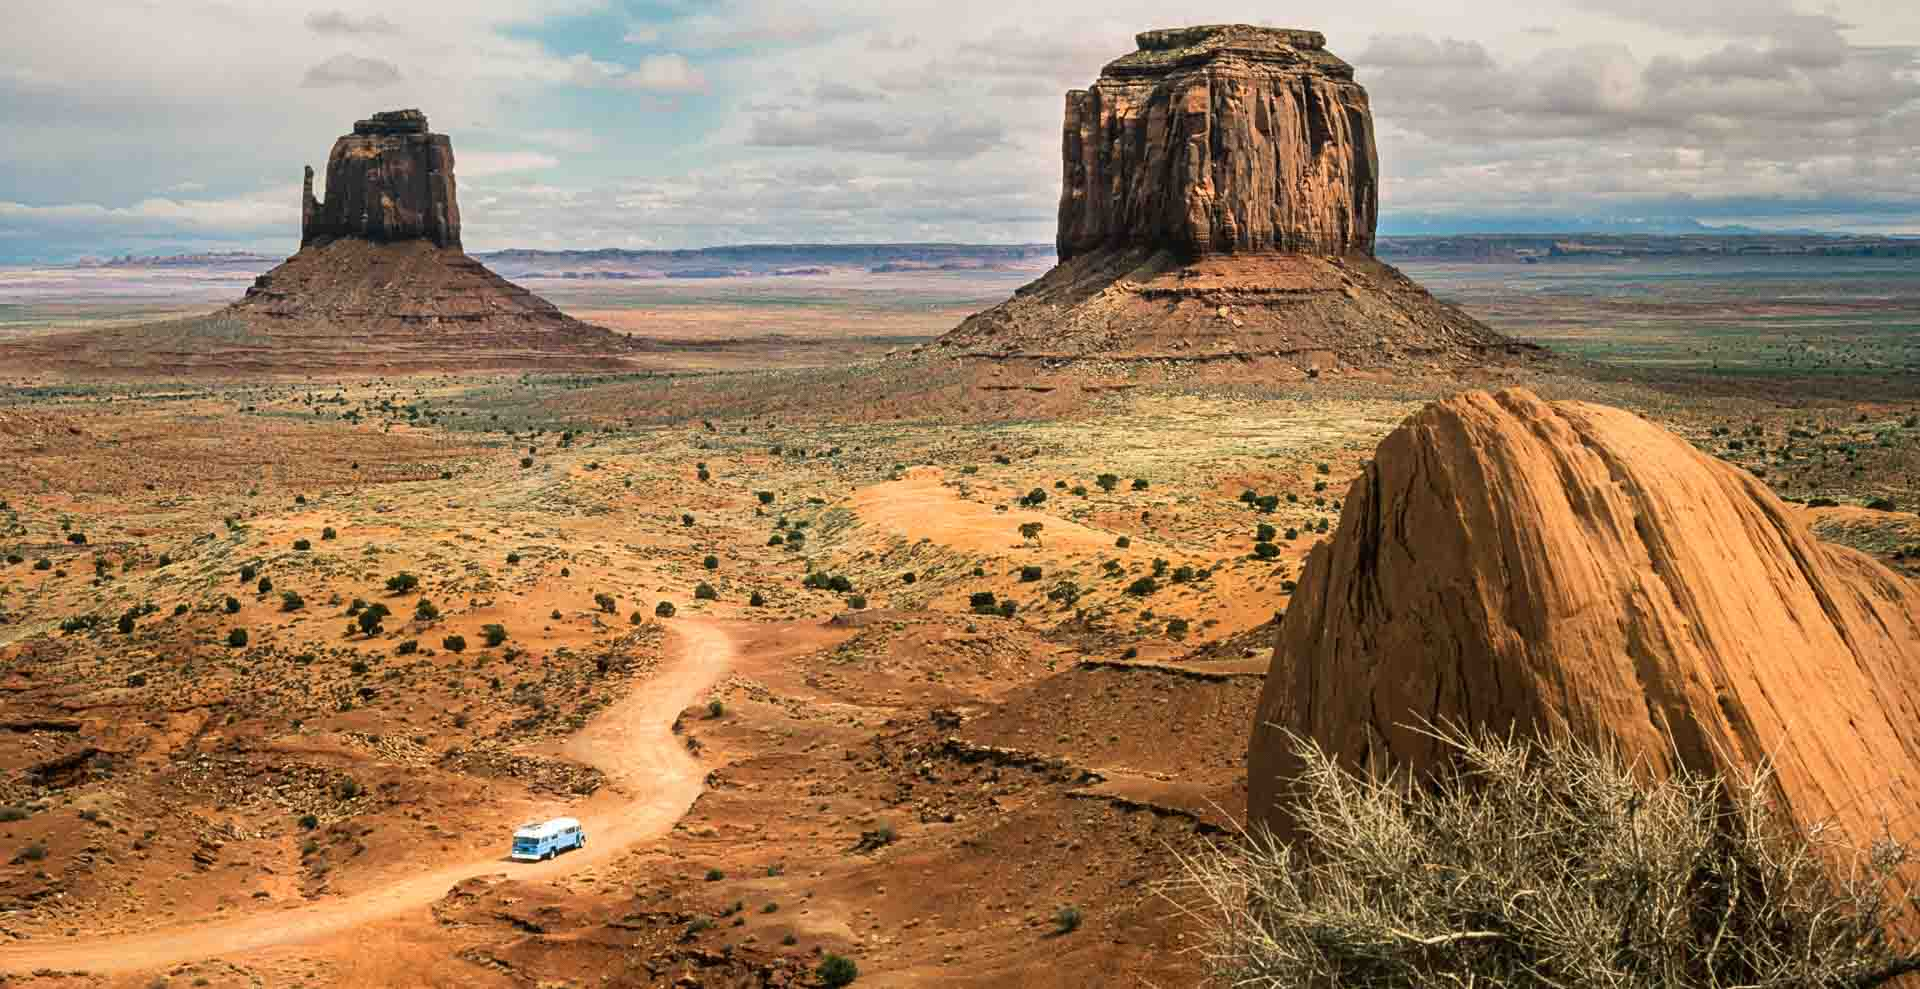 The Blubus travels Monument Valley, as we roam USA.